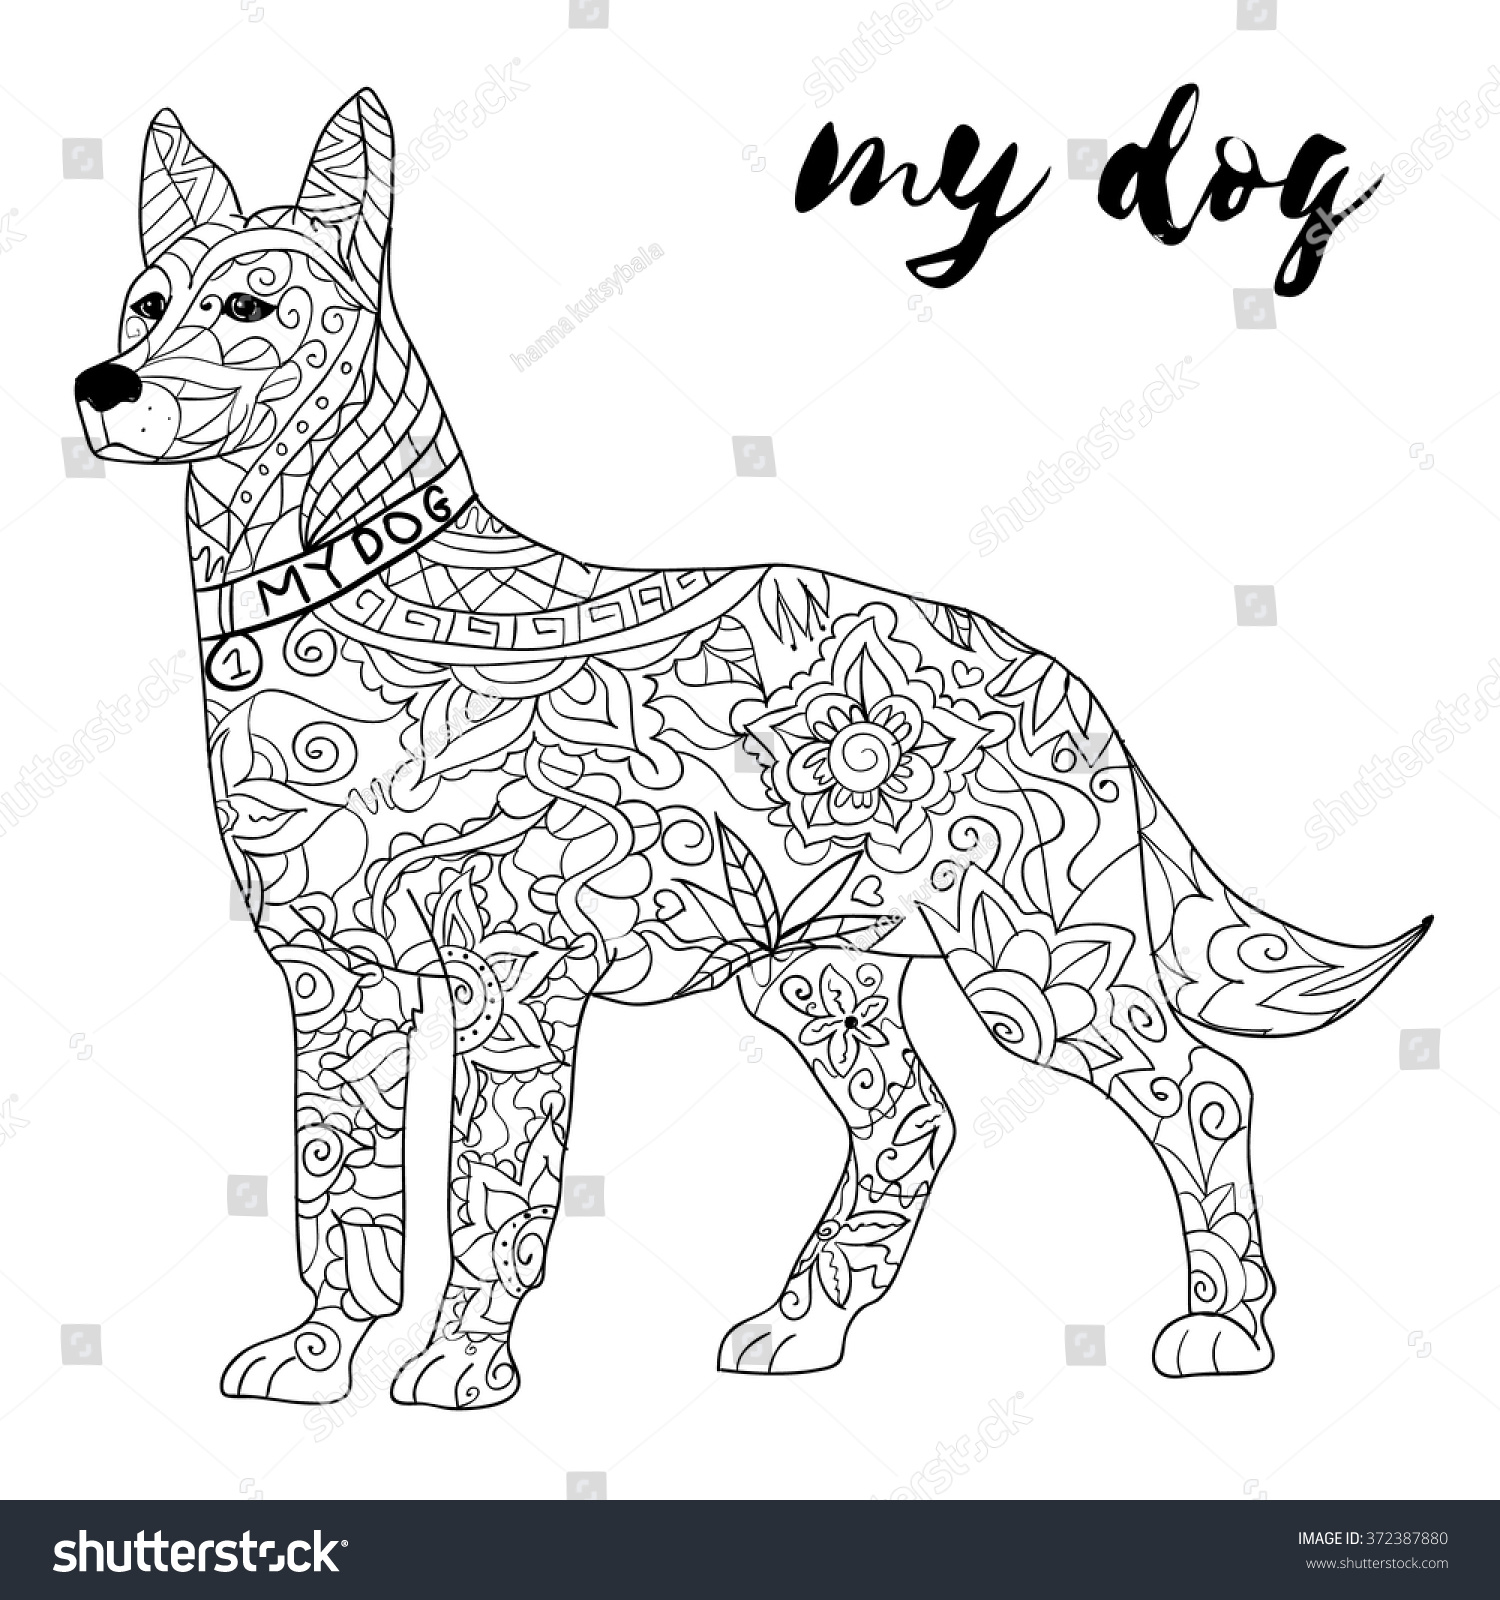 sheep and dogs coloring pages - photo#38